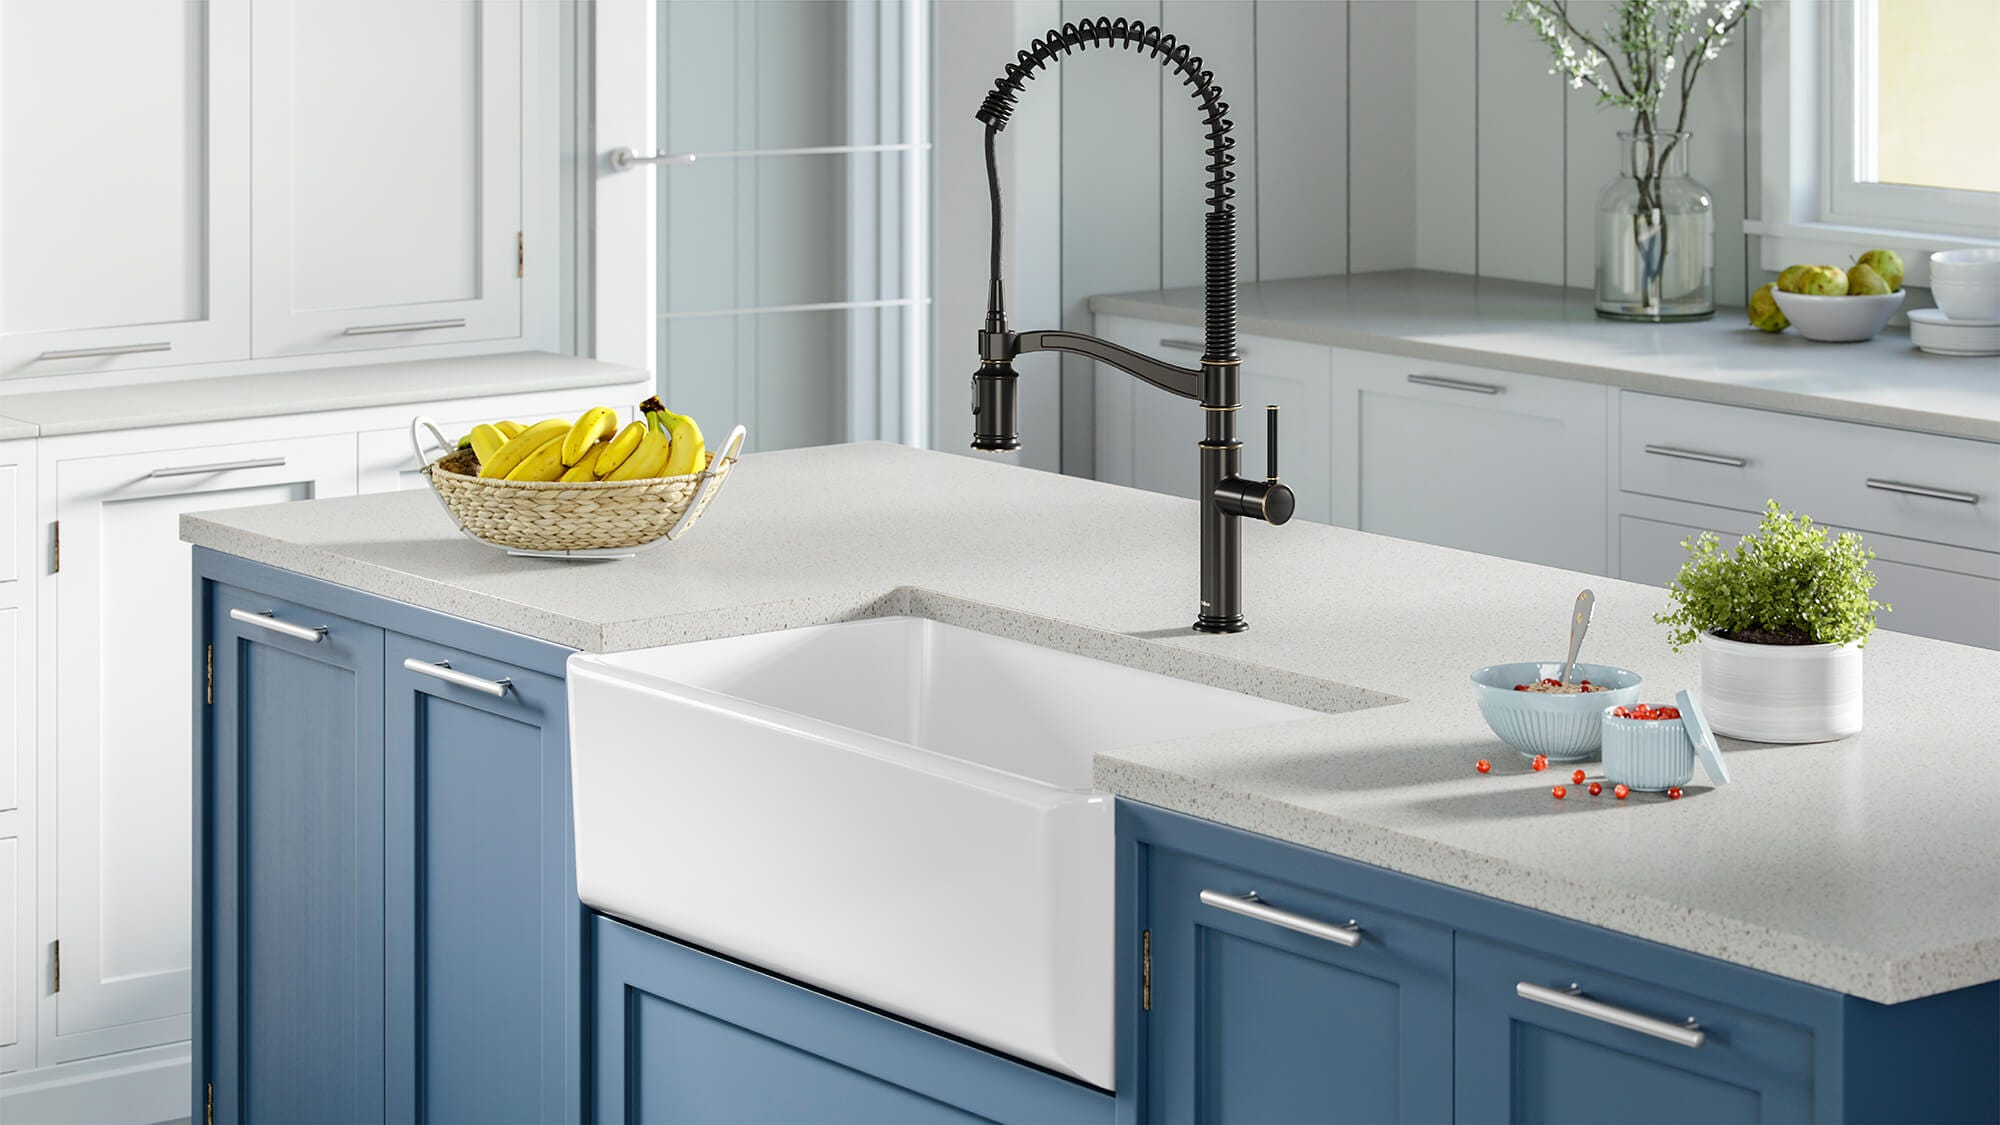 The Farmhouse Sink A Marriage Of Utility And Elegance